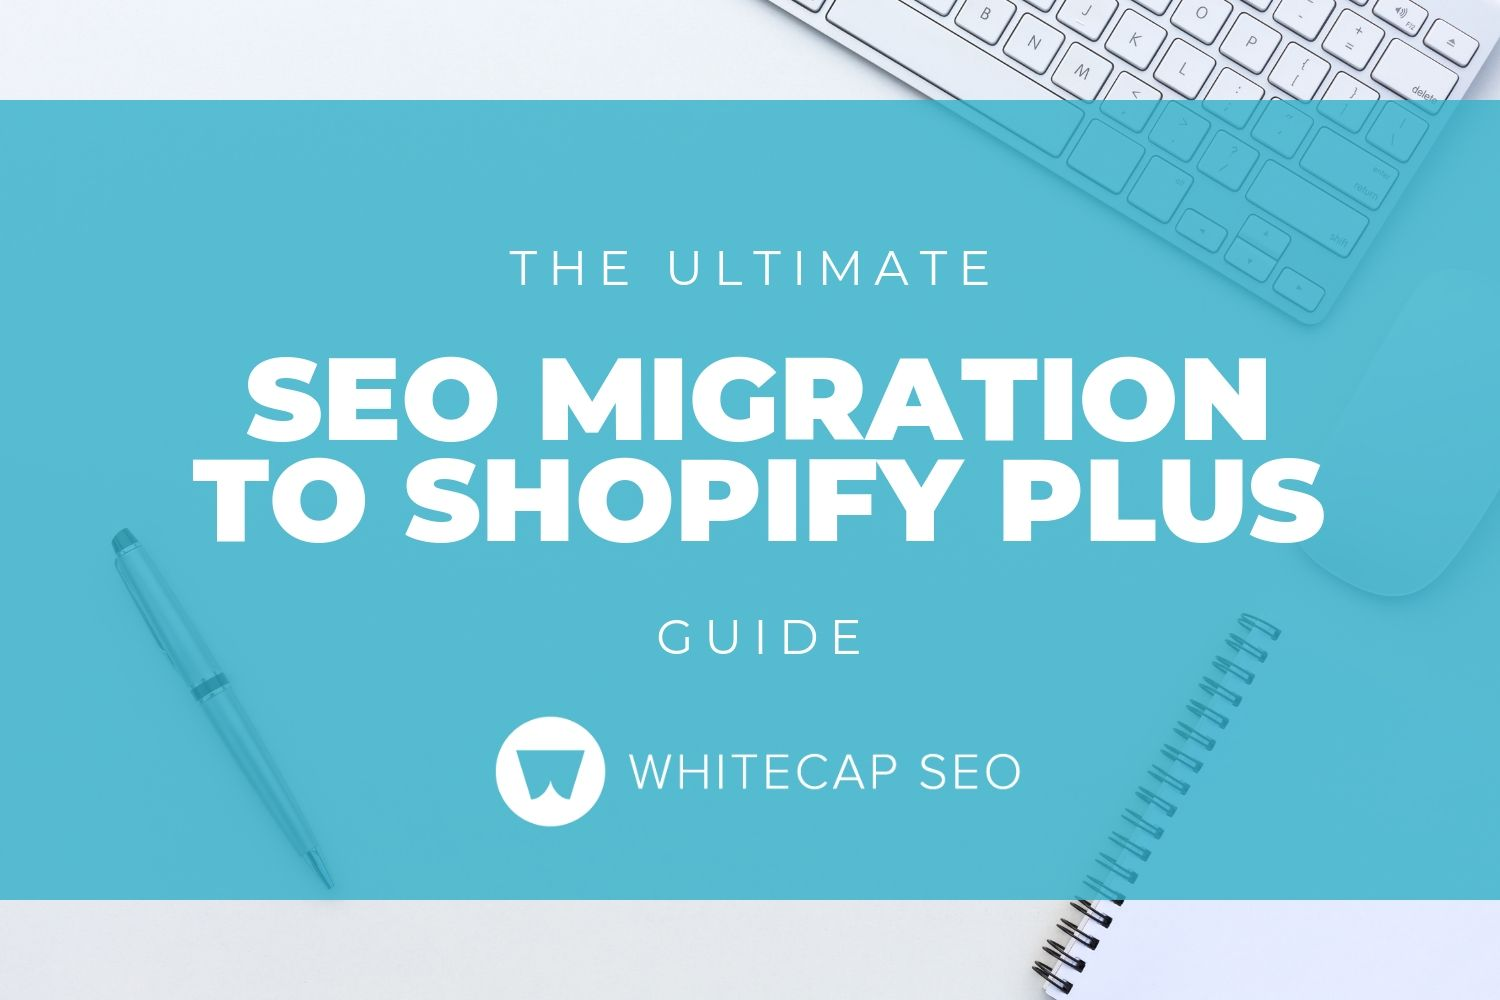 The Ultimate SEO Migration to Shopify Plus Guide.jpg